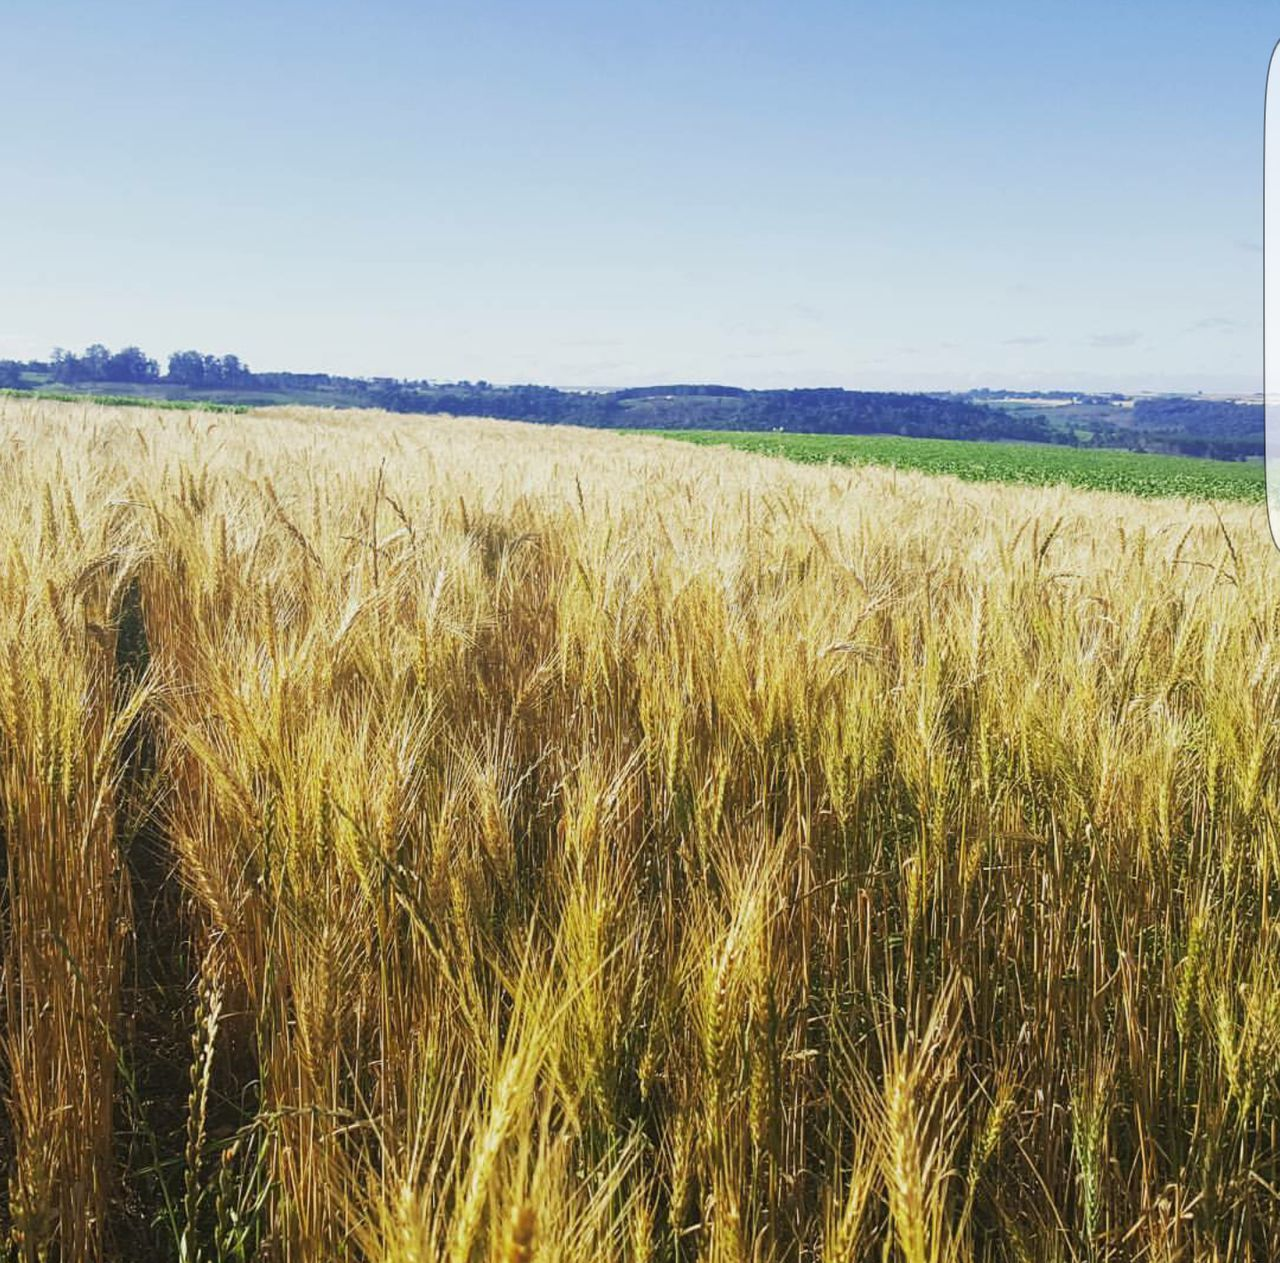 agriculture, field, crop, growth, farm, landscape, nature, cereal plant, tranquility, tranquil scene, beauty in nature, rural scene, scenics, wheat, ear of wheat, no people, clear sky, sky, day, outdoors, plant, grass